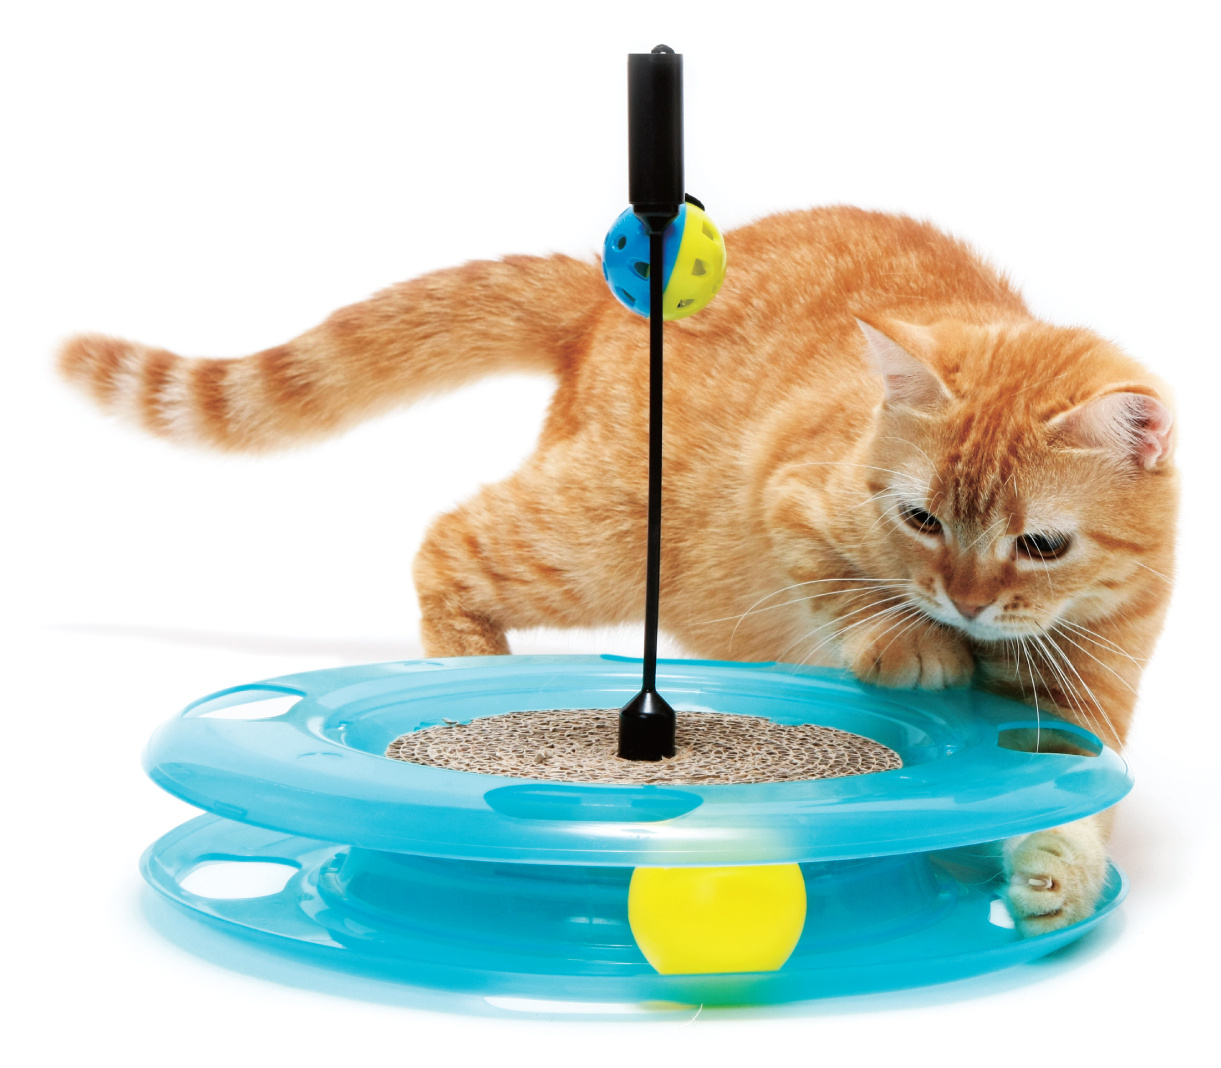 Veterinarian recommended cat toys